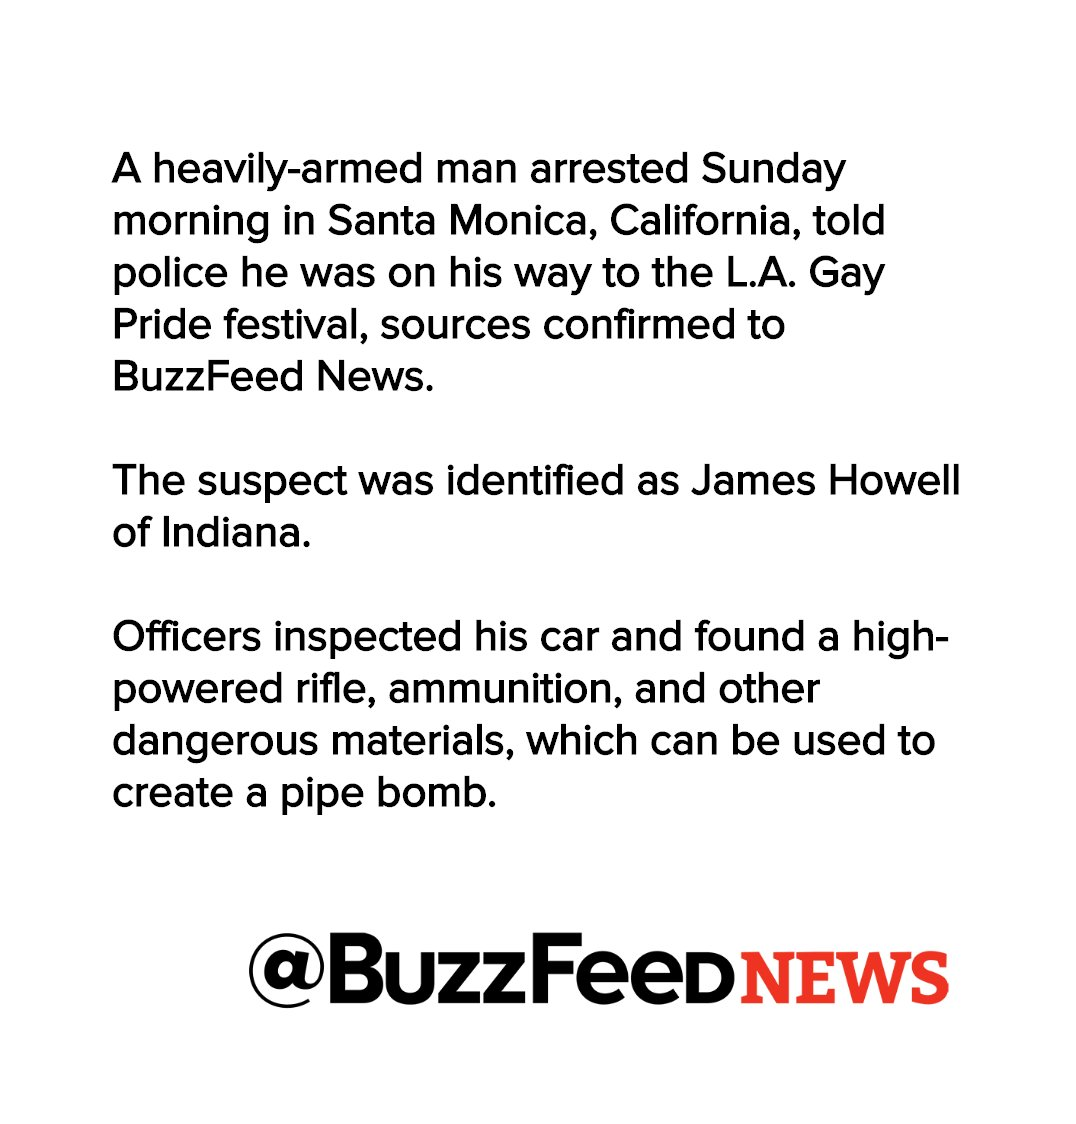 Police identify James Howell as man arrested with explosives on his way to L.A. pride parade https://t.co/p2JGmFTHES